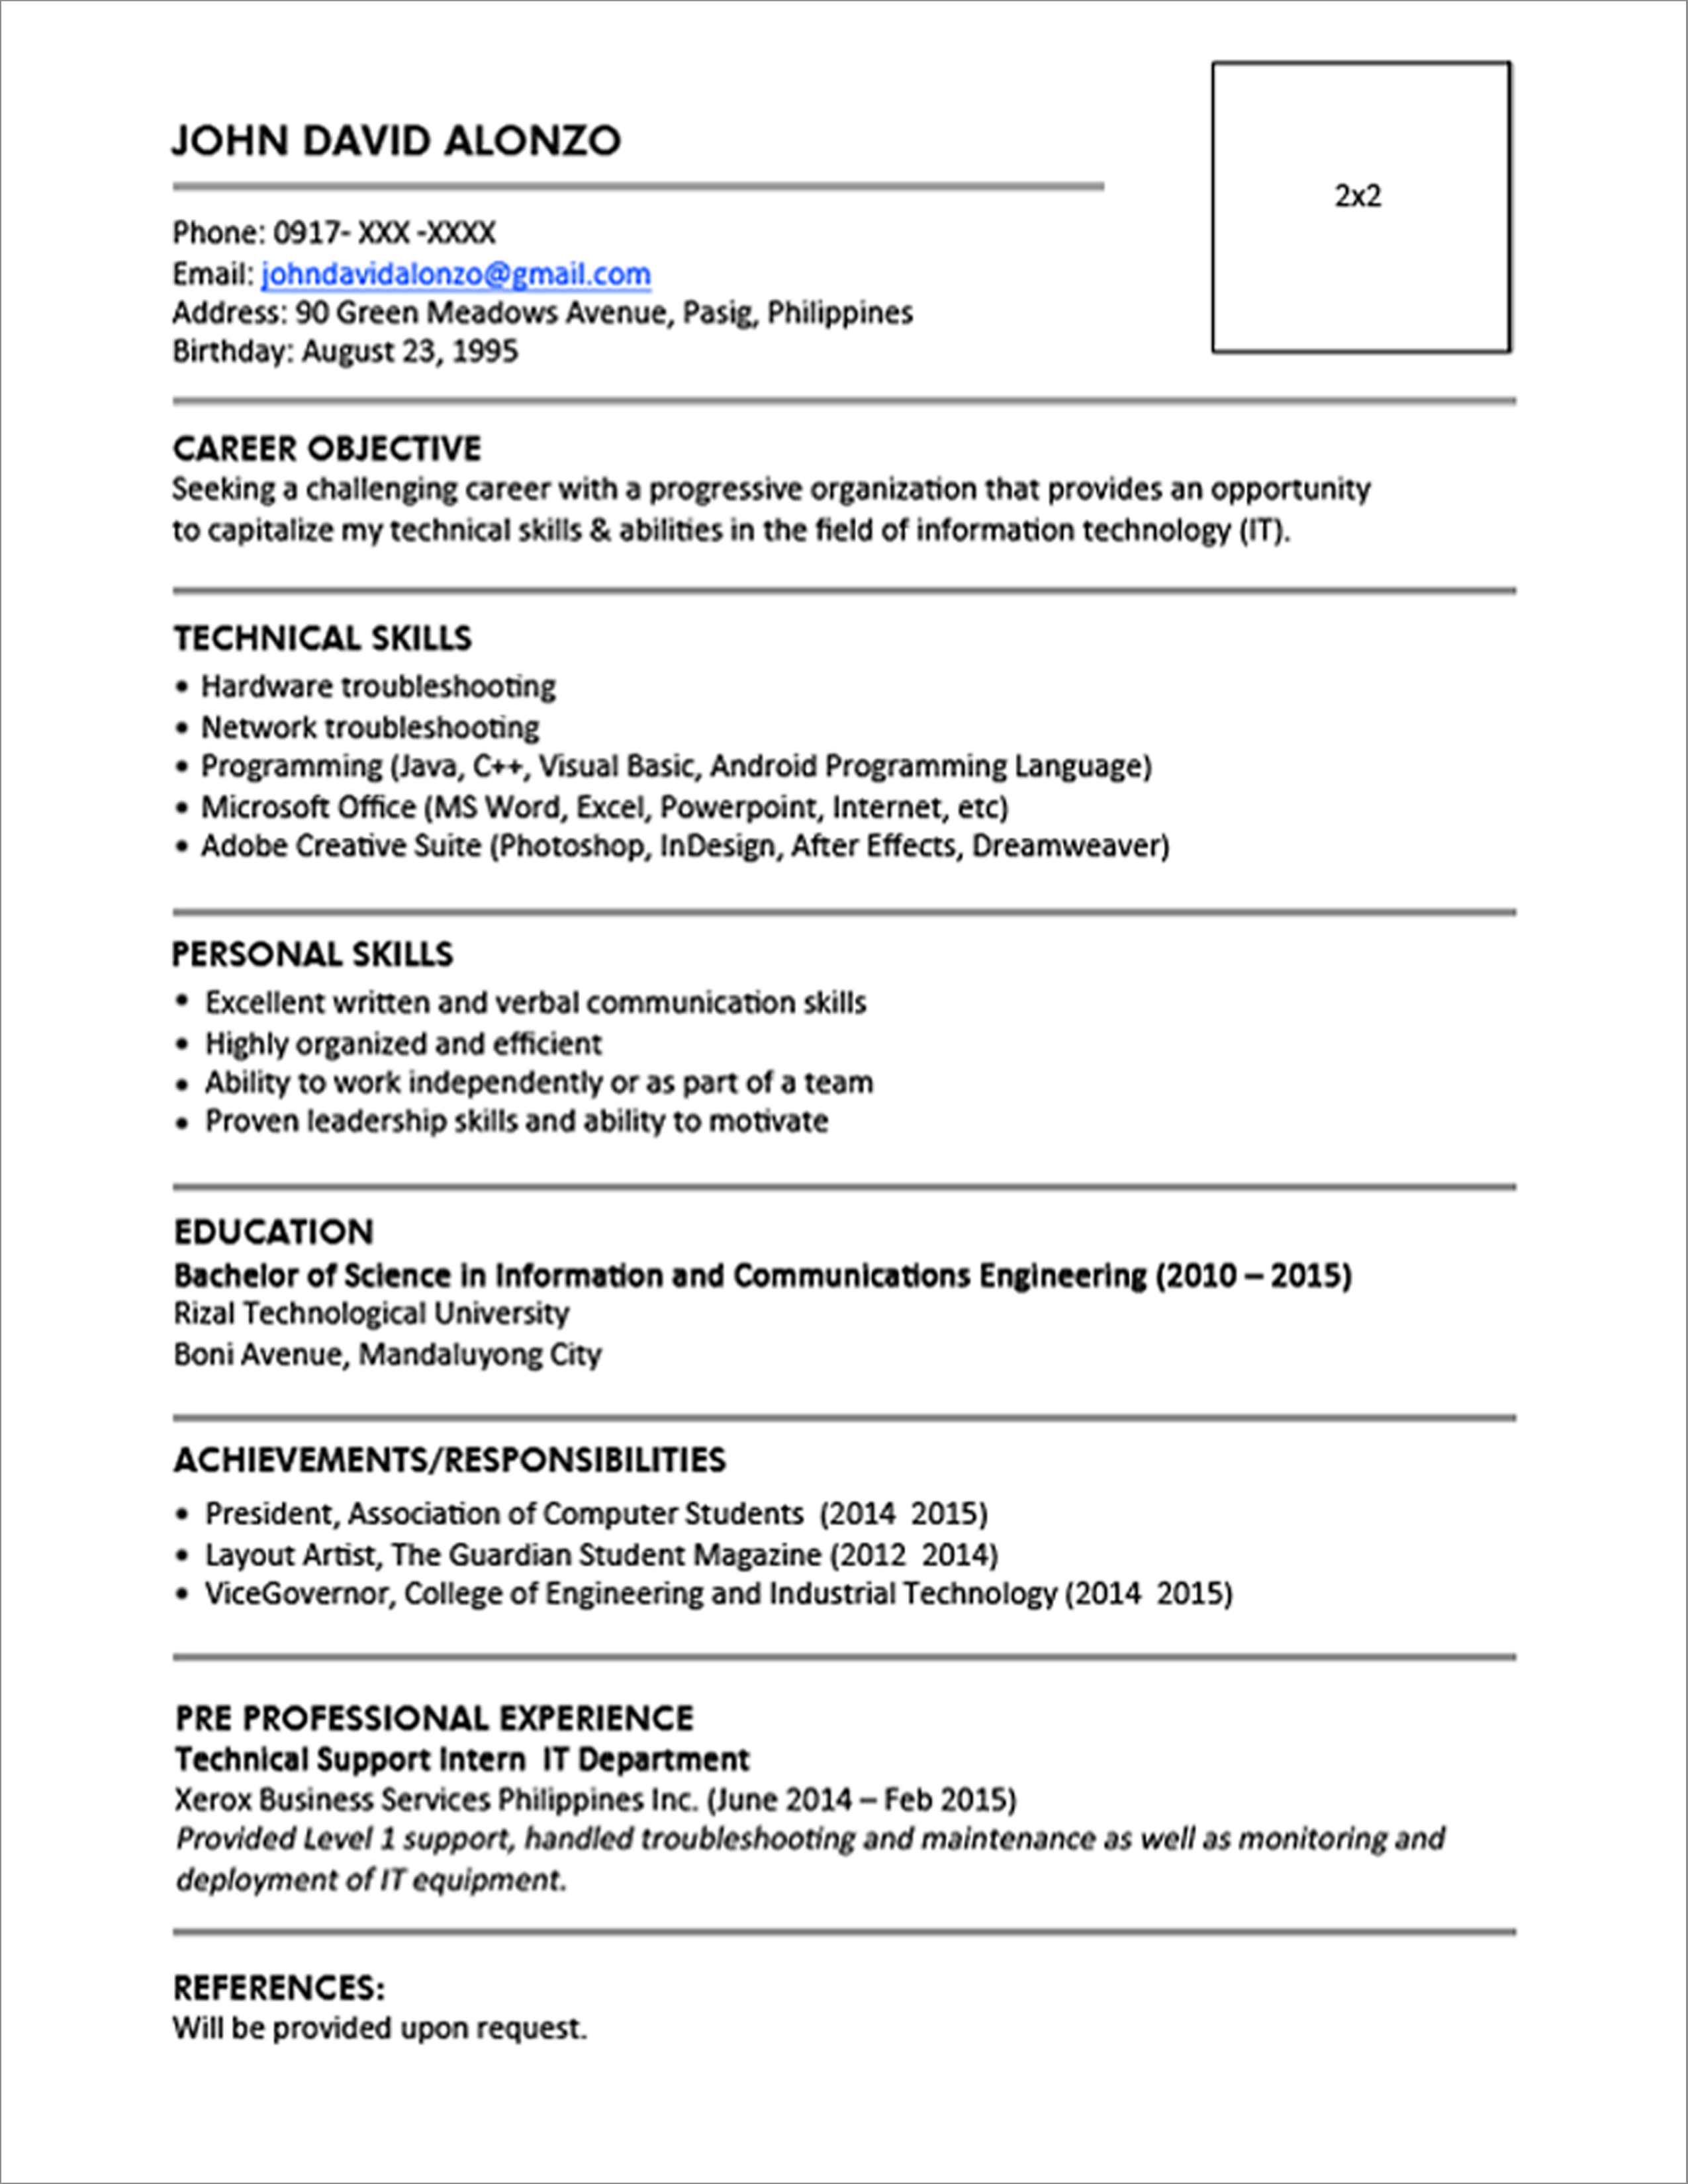 Example Of A Resume Sample Resume Format For Fresh Graduates Single Page 13 1 example of a resume wikiresume.com